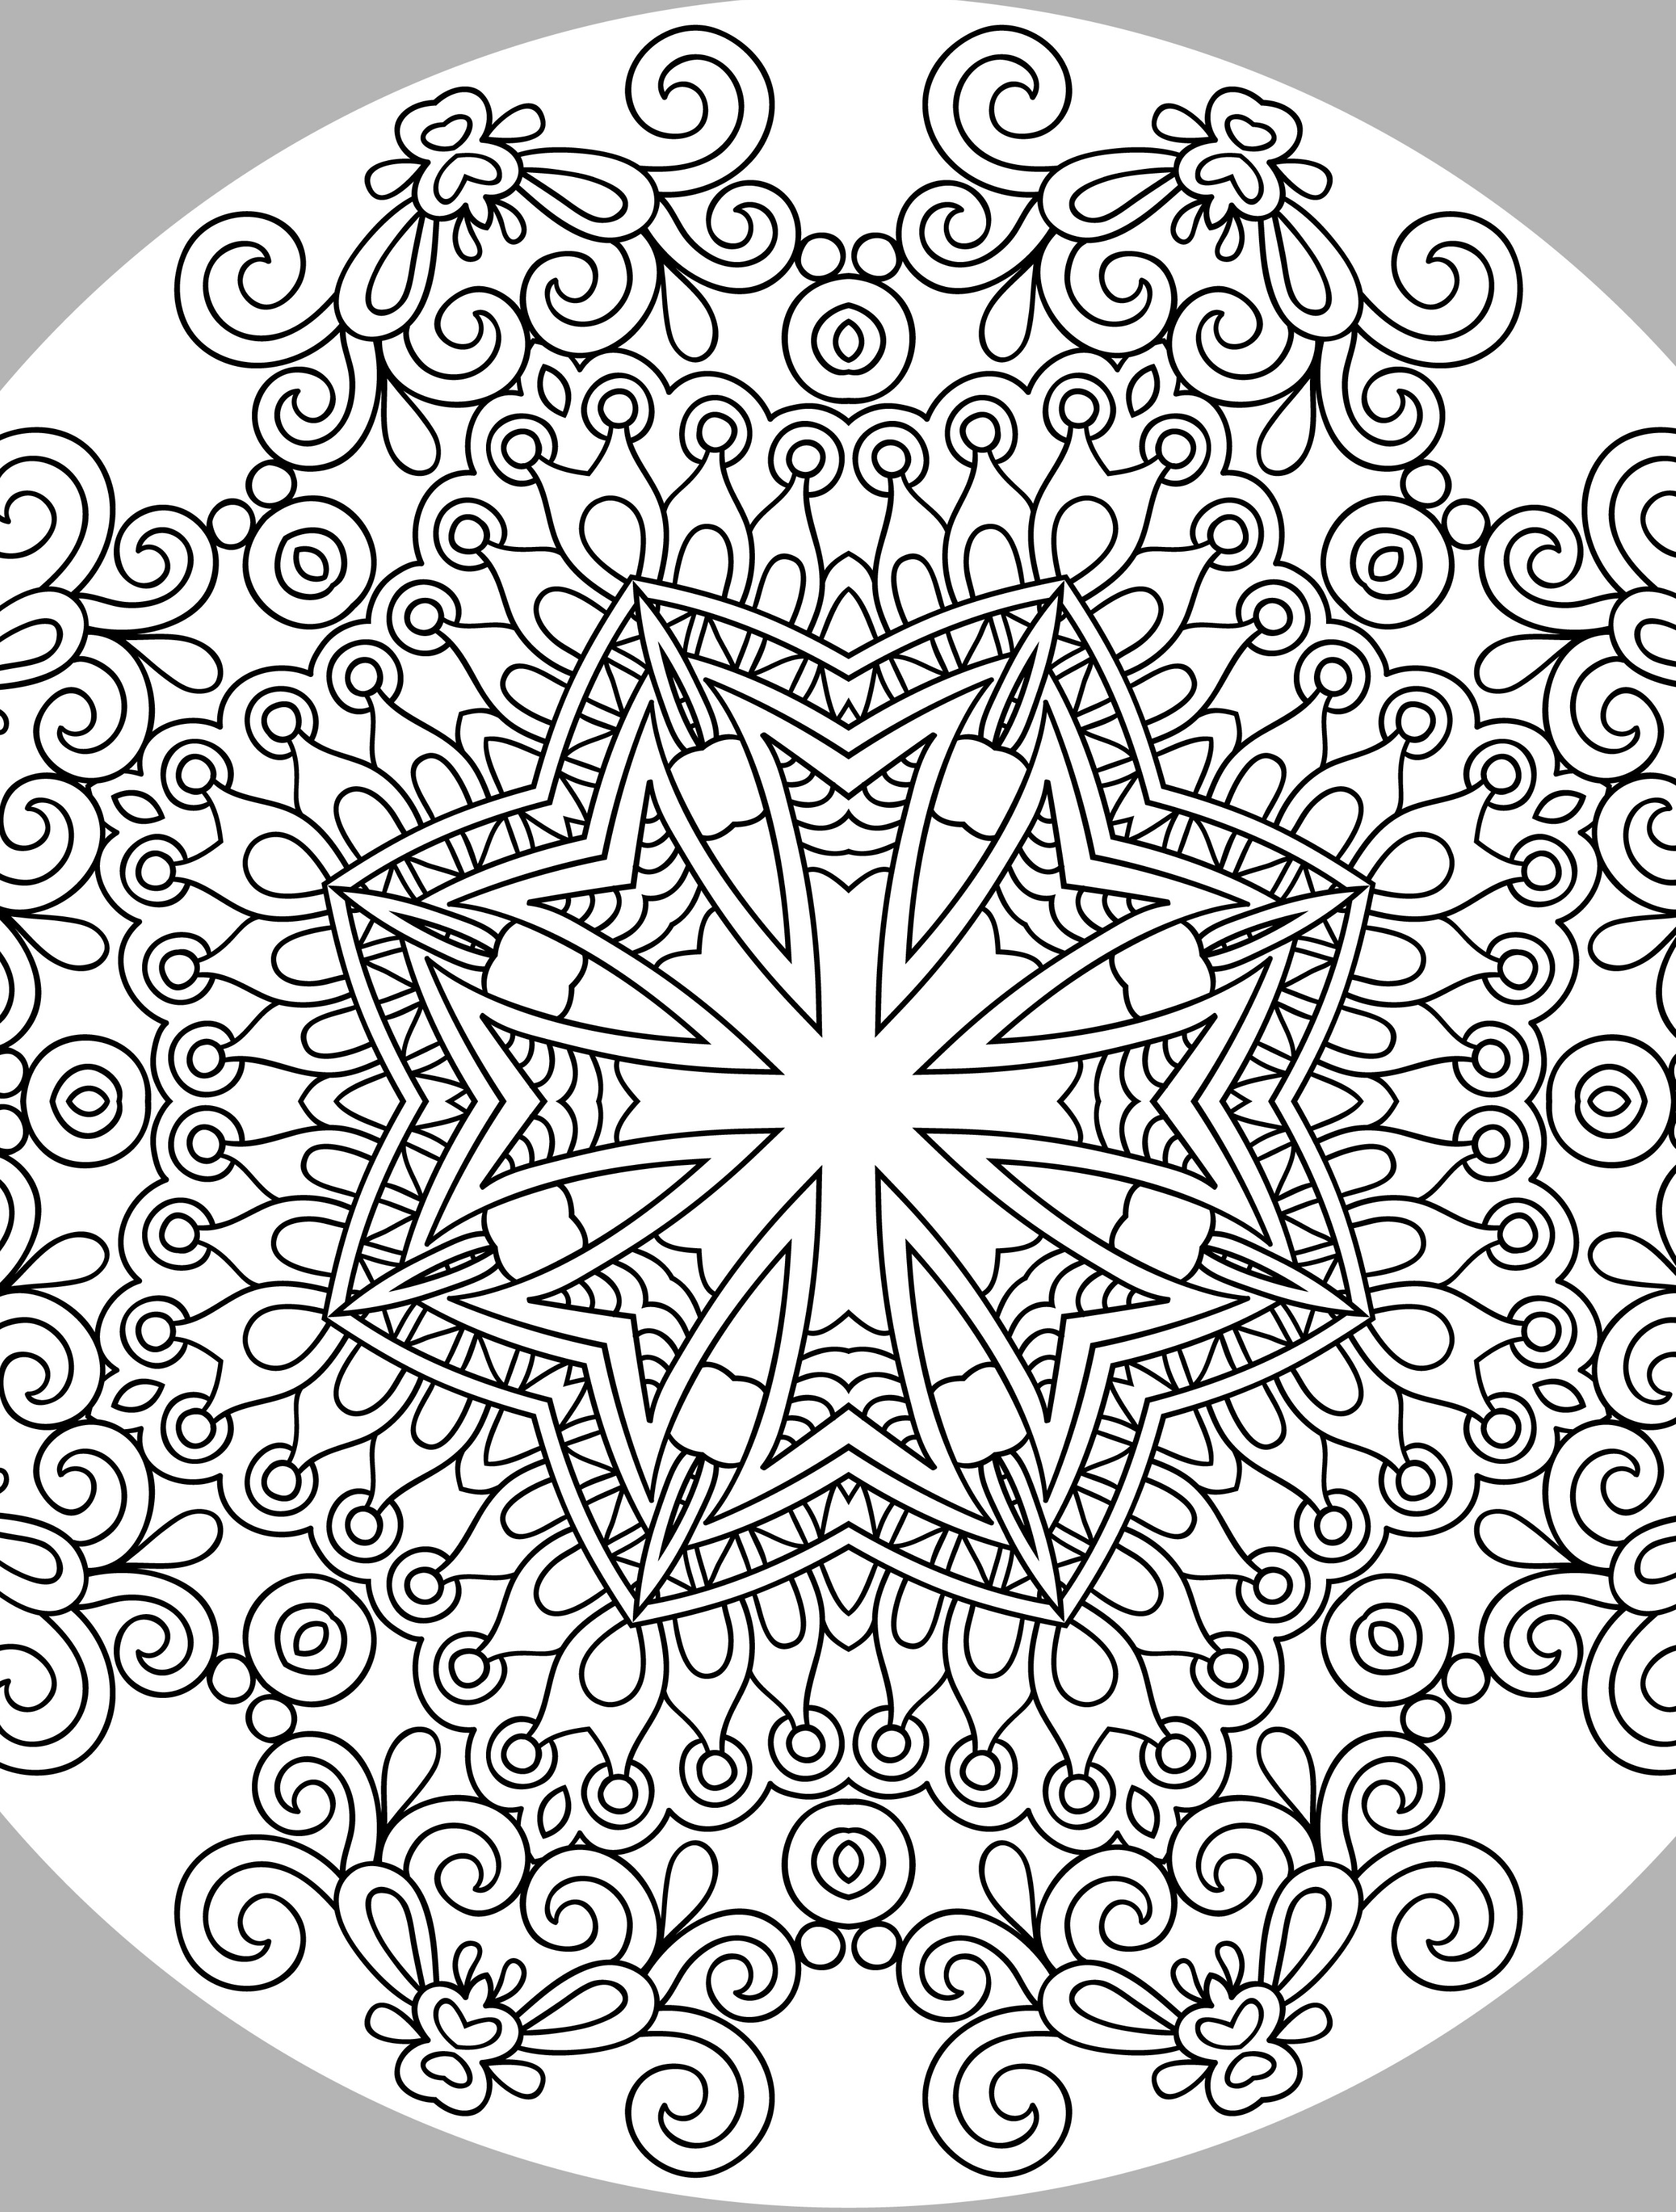 Free Printable Holiday Coloring Pages - 10 Free Printable Holiday Adult Coloring Pages